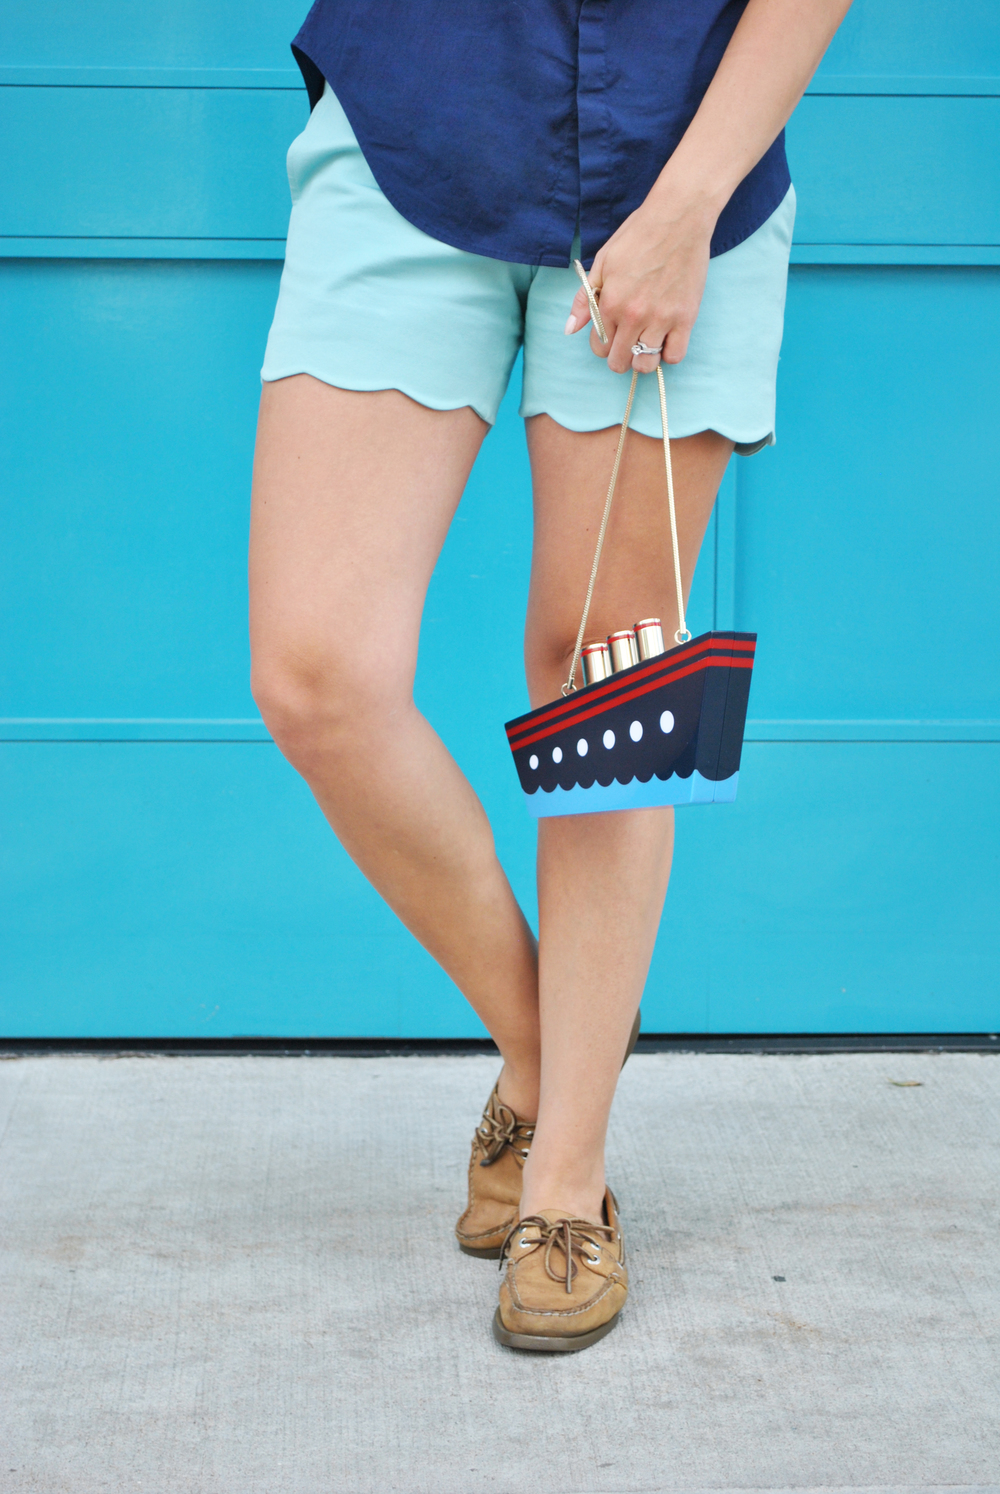 thoughtfulwish | blue outfit // j.mcglaughlin // scallop shorts // ralph lauren // portobello road // kate spade ny // kate spade // novelty bag // ship purse // preppy // boston // meredith wish